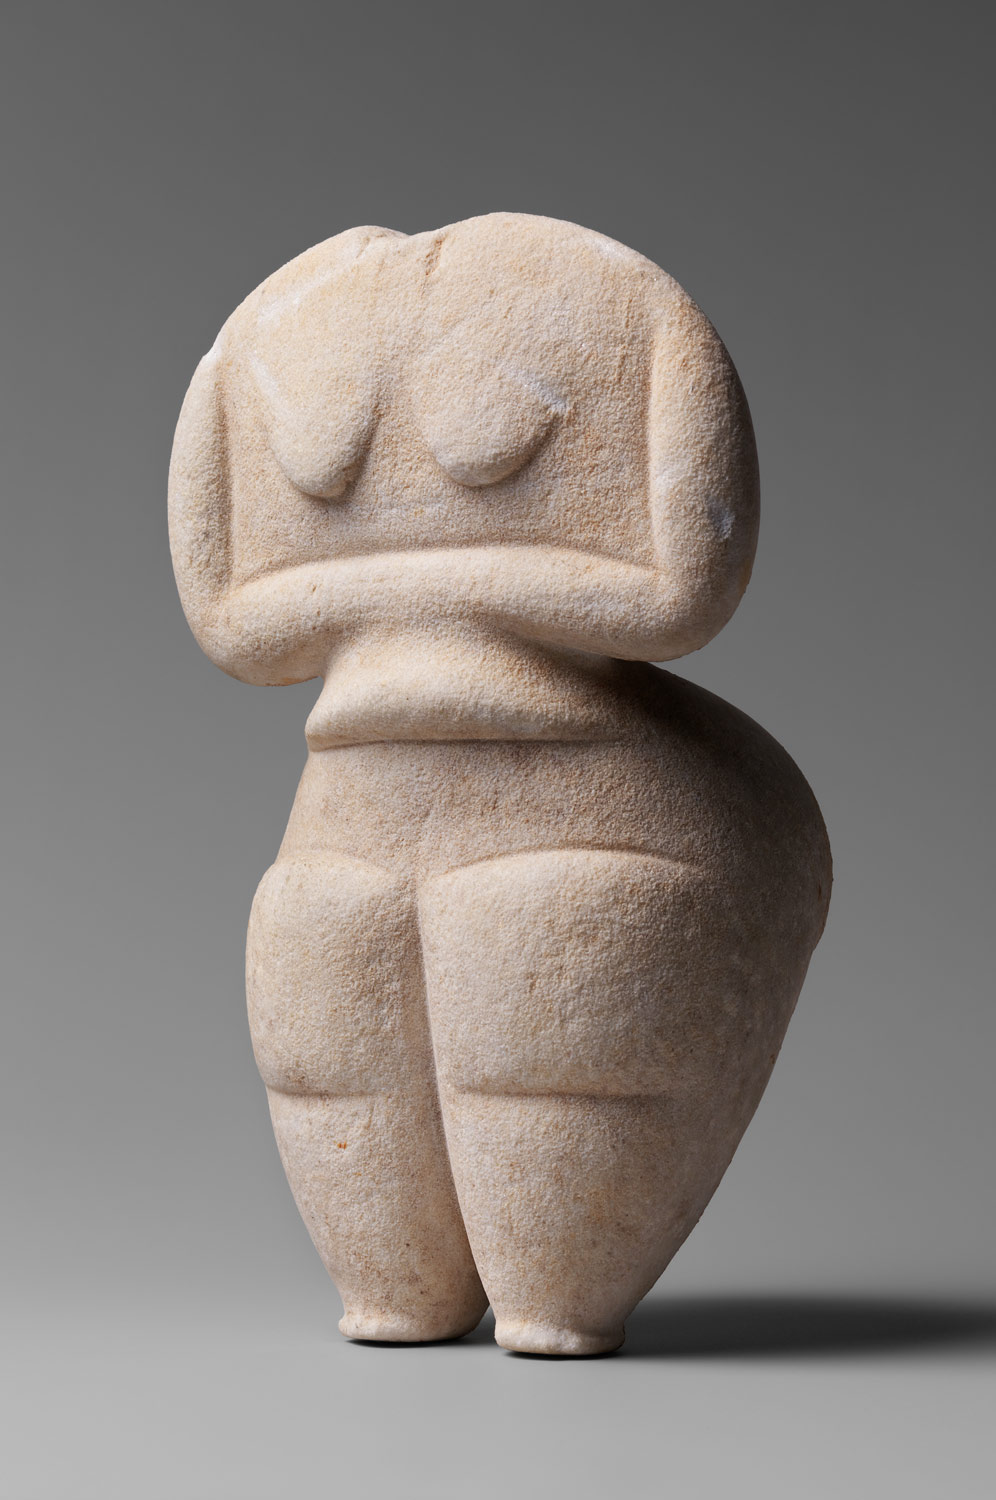 Marble female figure, cycladic figurines				,Stone Sculpture